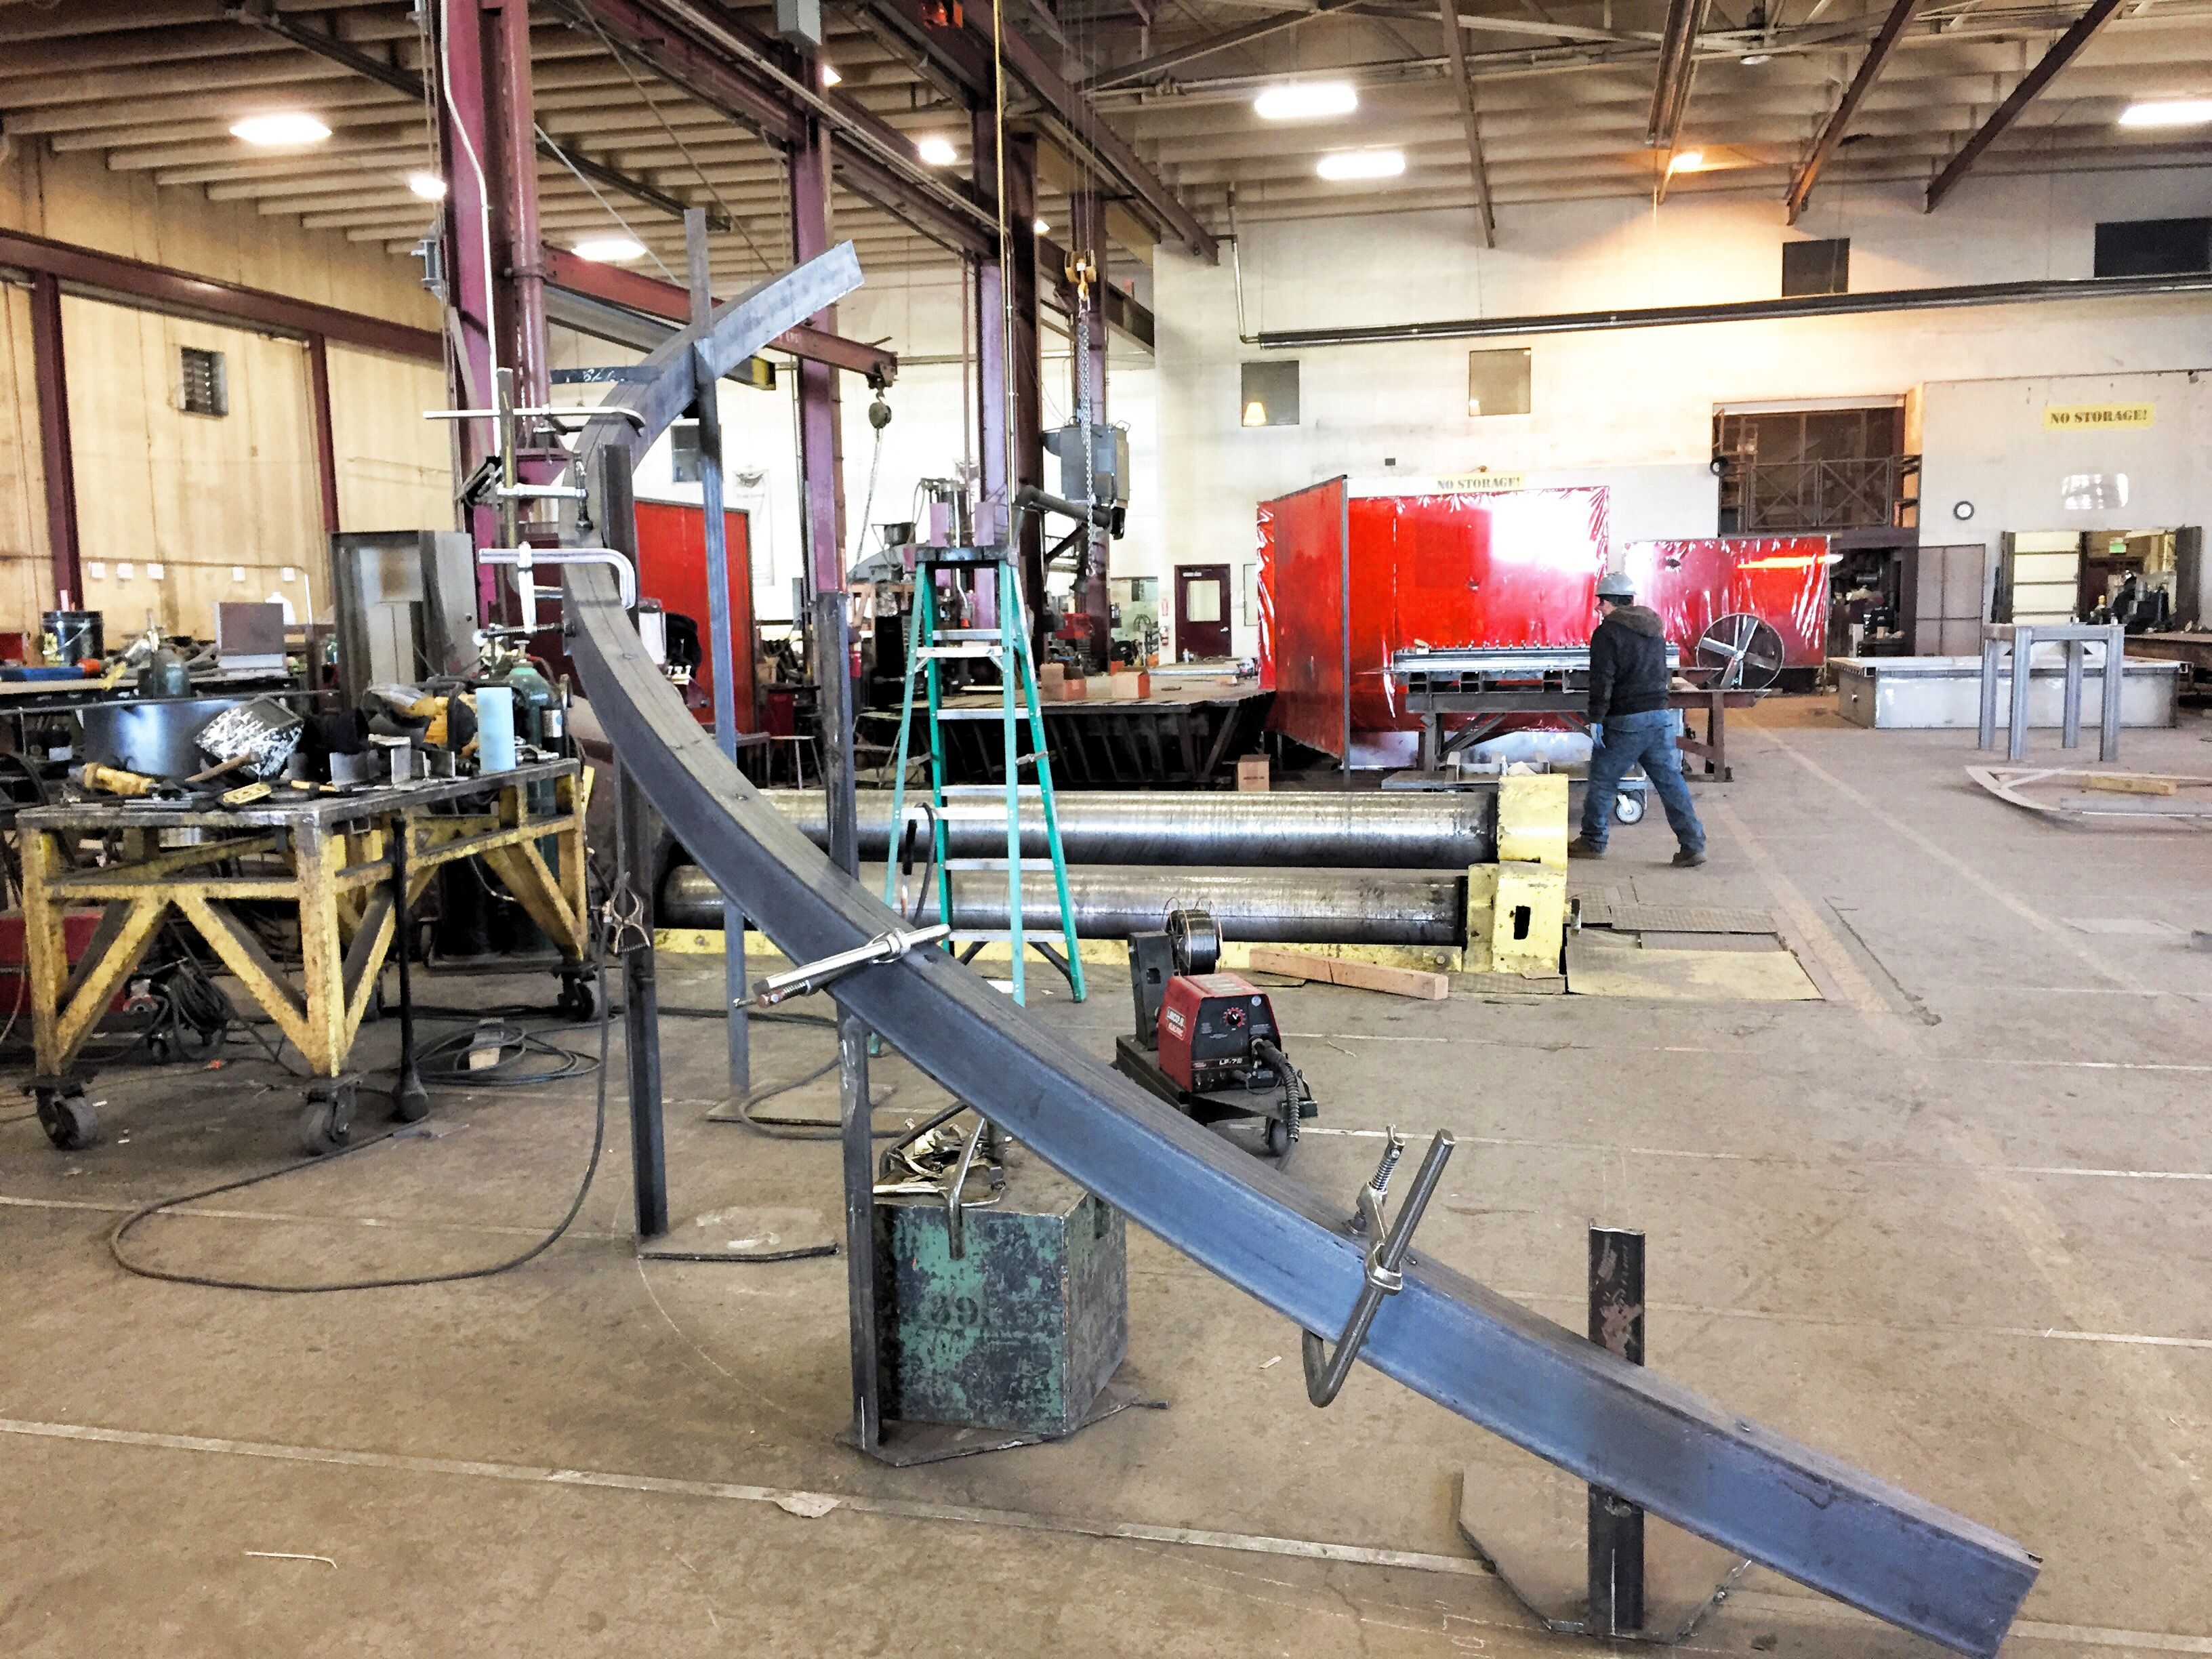 Steel Channel Rolled For Spiral Staircase Stringers. One Is Rolled Flanges  In And One Flanges Out To Mate Up On This Stringer. Rolled At Longero In  Denver, ...